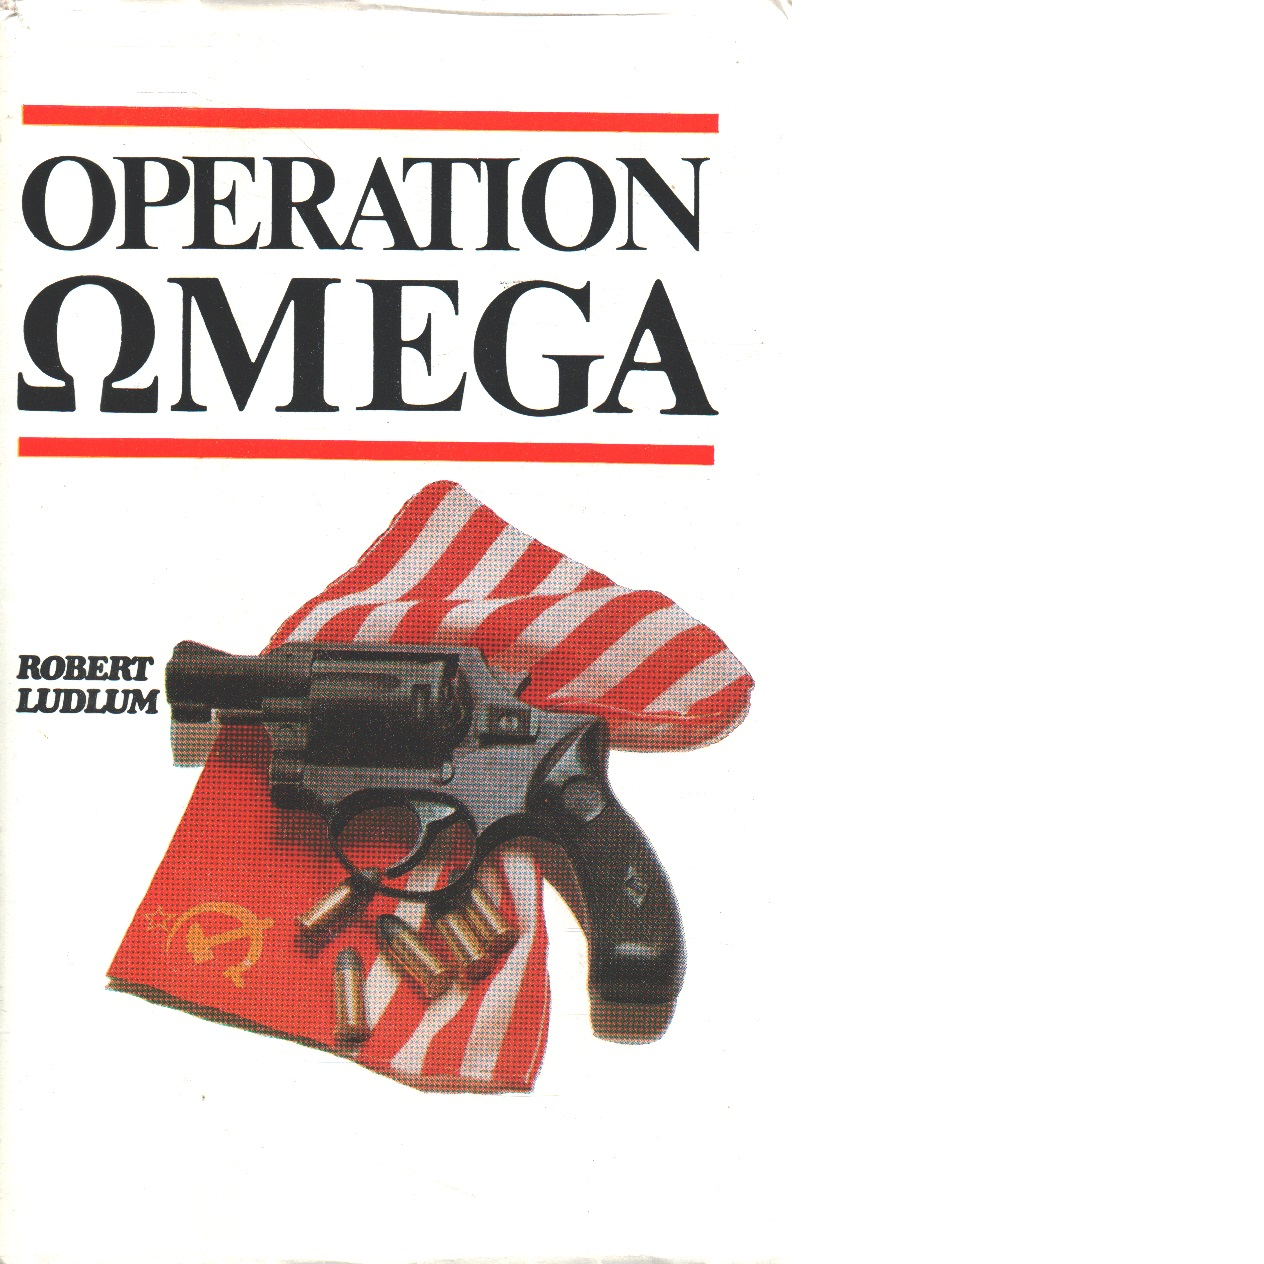 Operation Omega - Ludlum, Robert